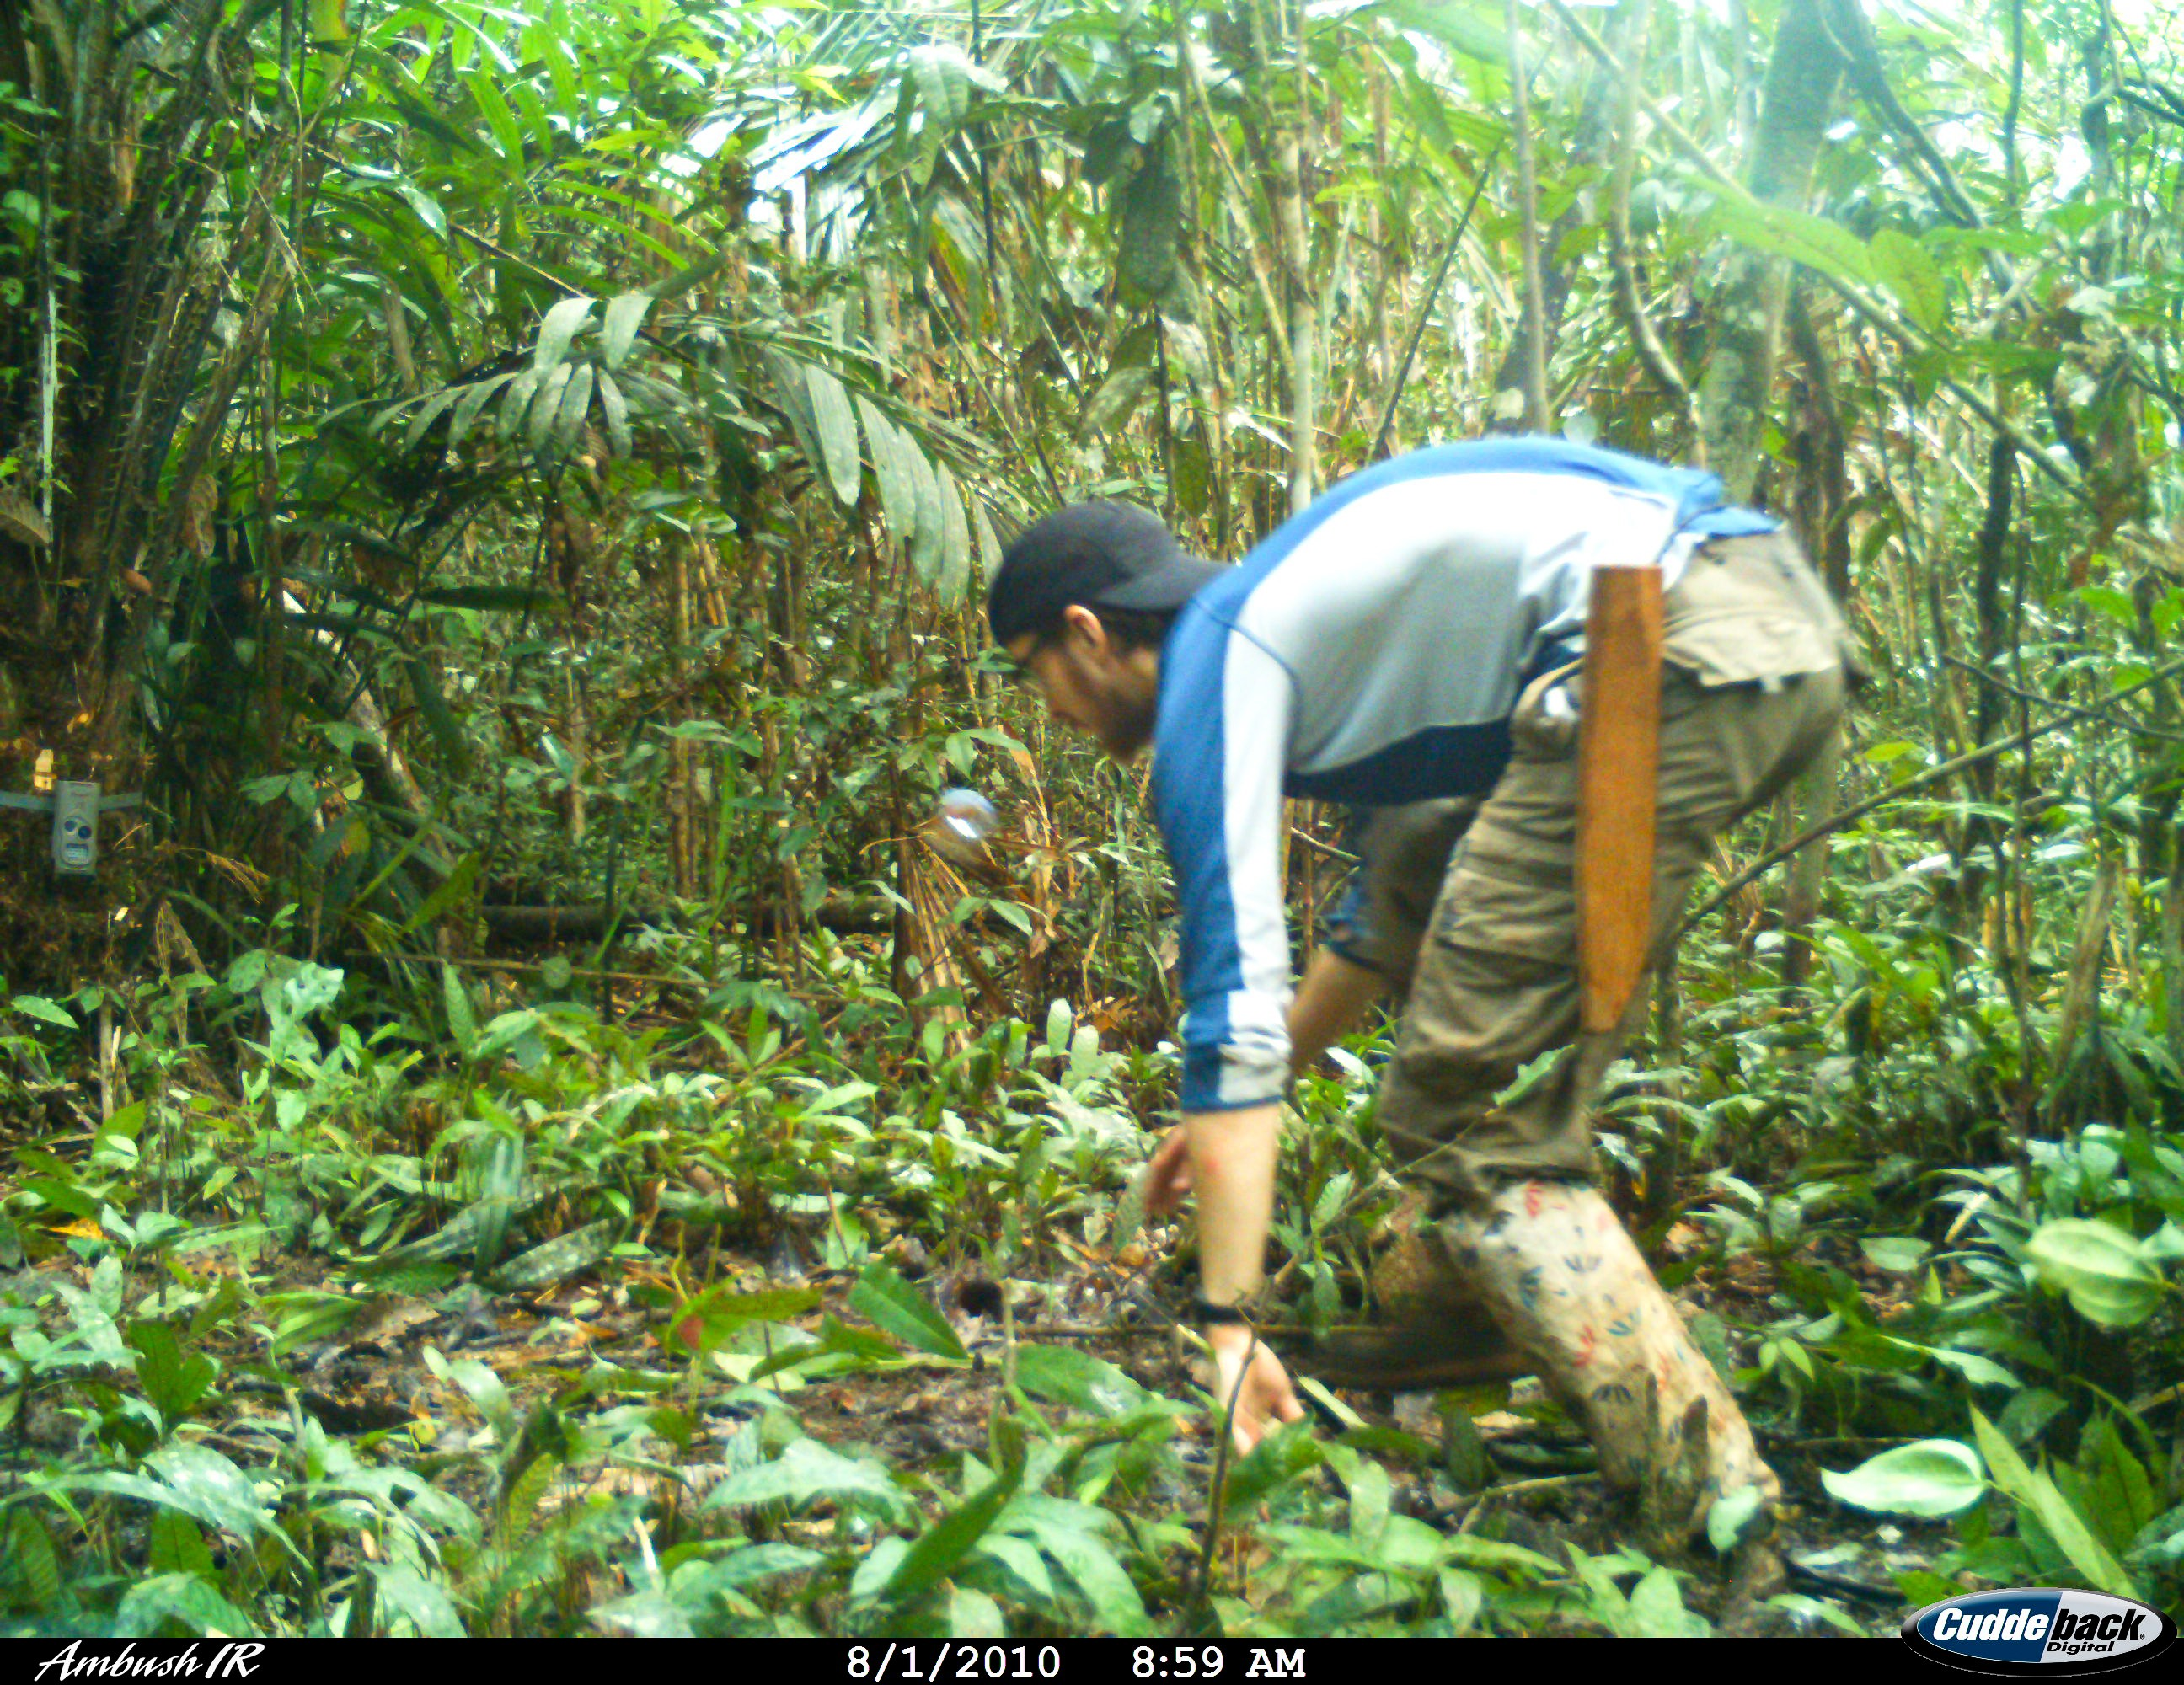 Ewan Macdonald setting camera traps for clouded leopards in Borneo. Researchers commonly move in front of the camera traps to mimic animals and ensure that the traps are set correctly.